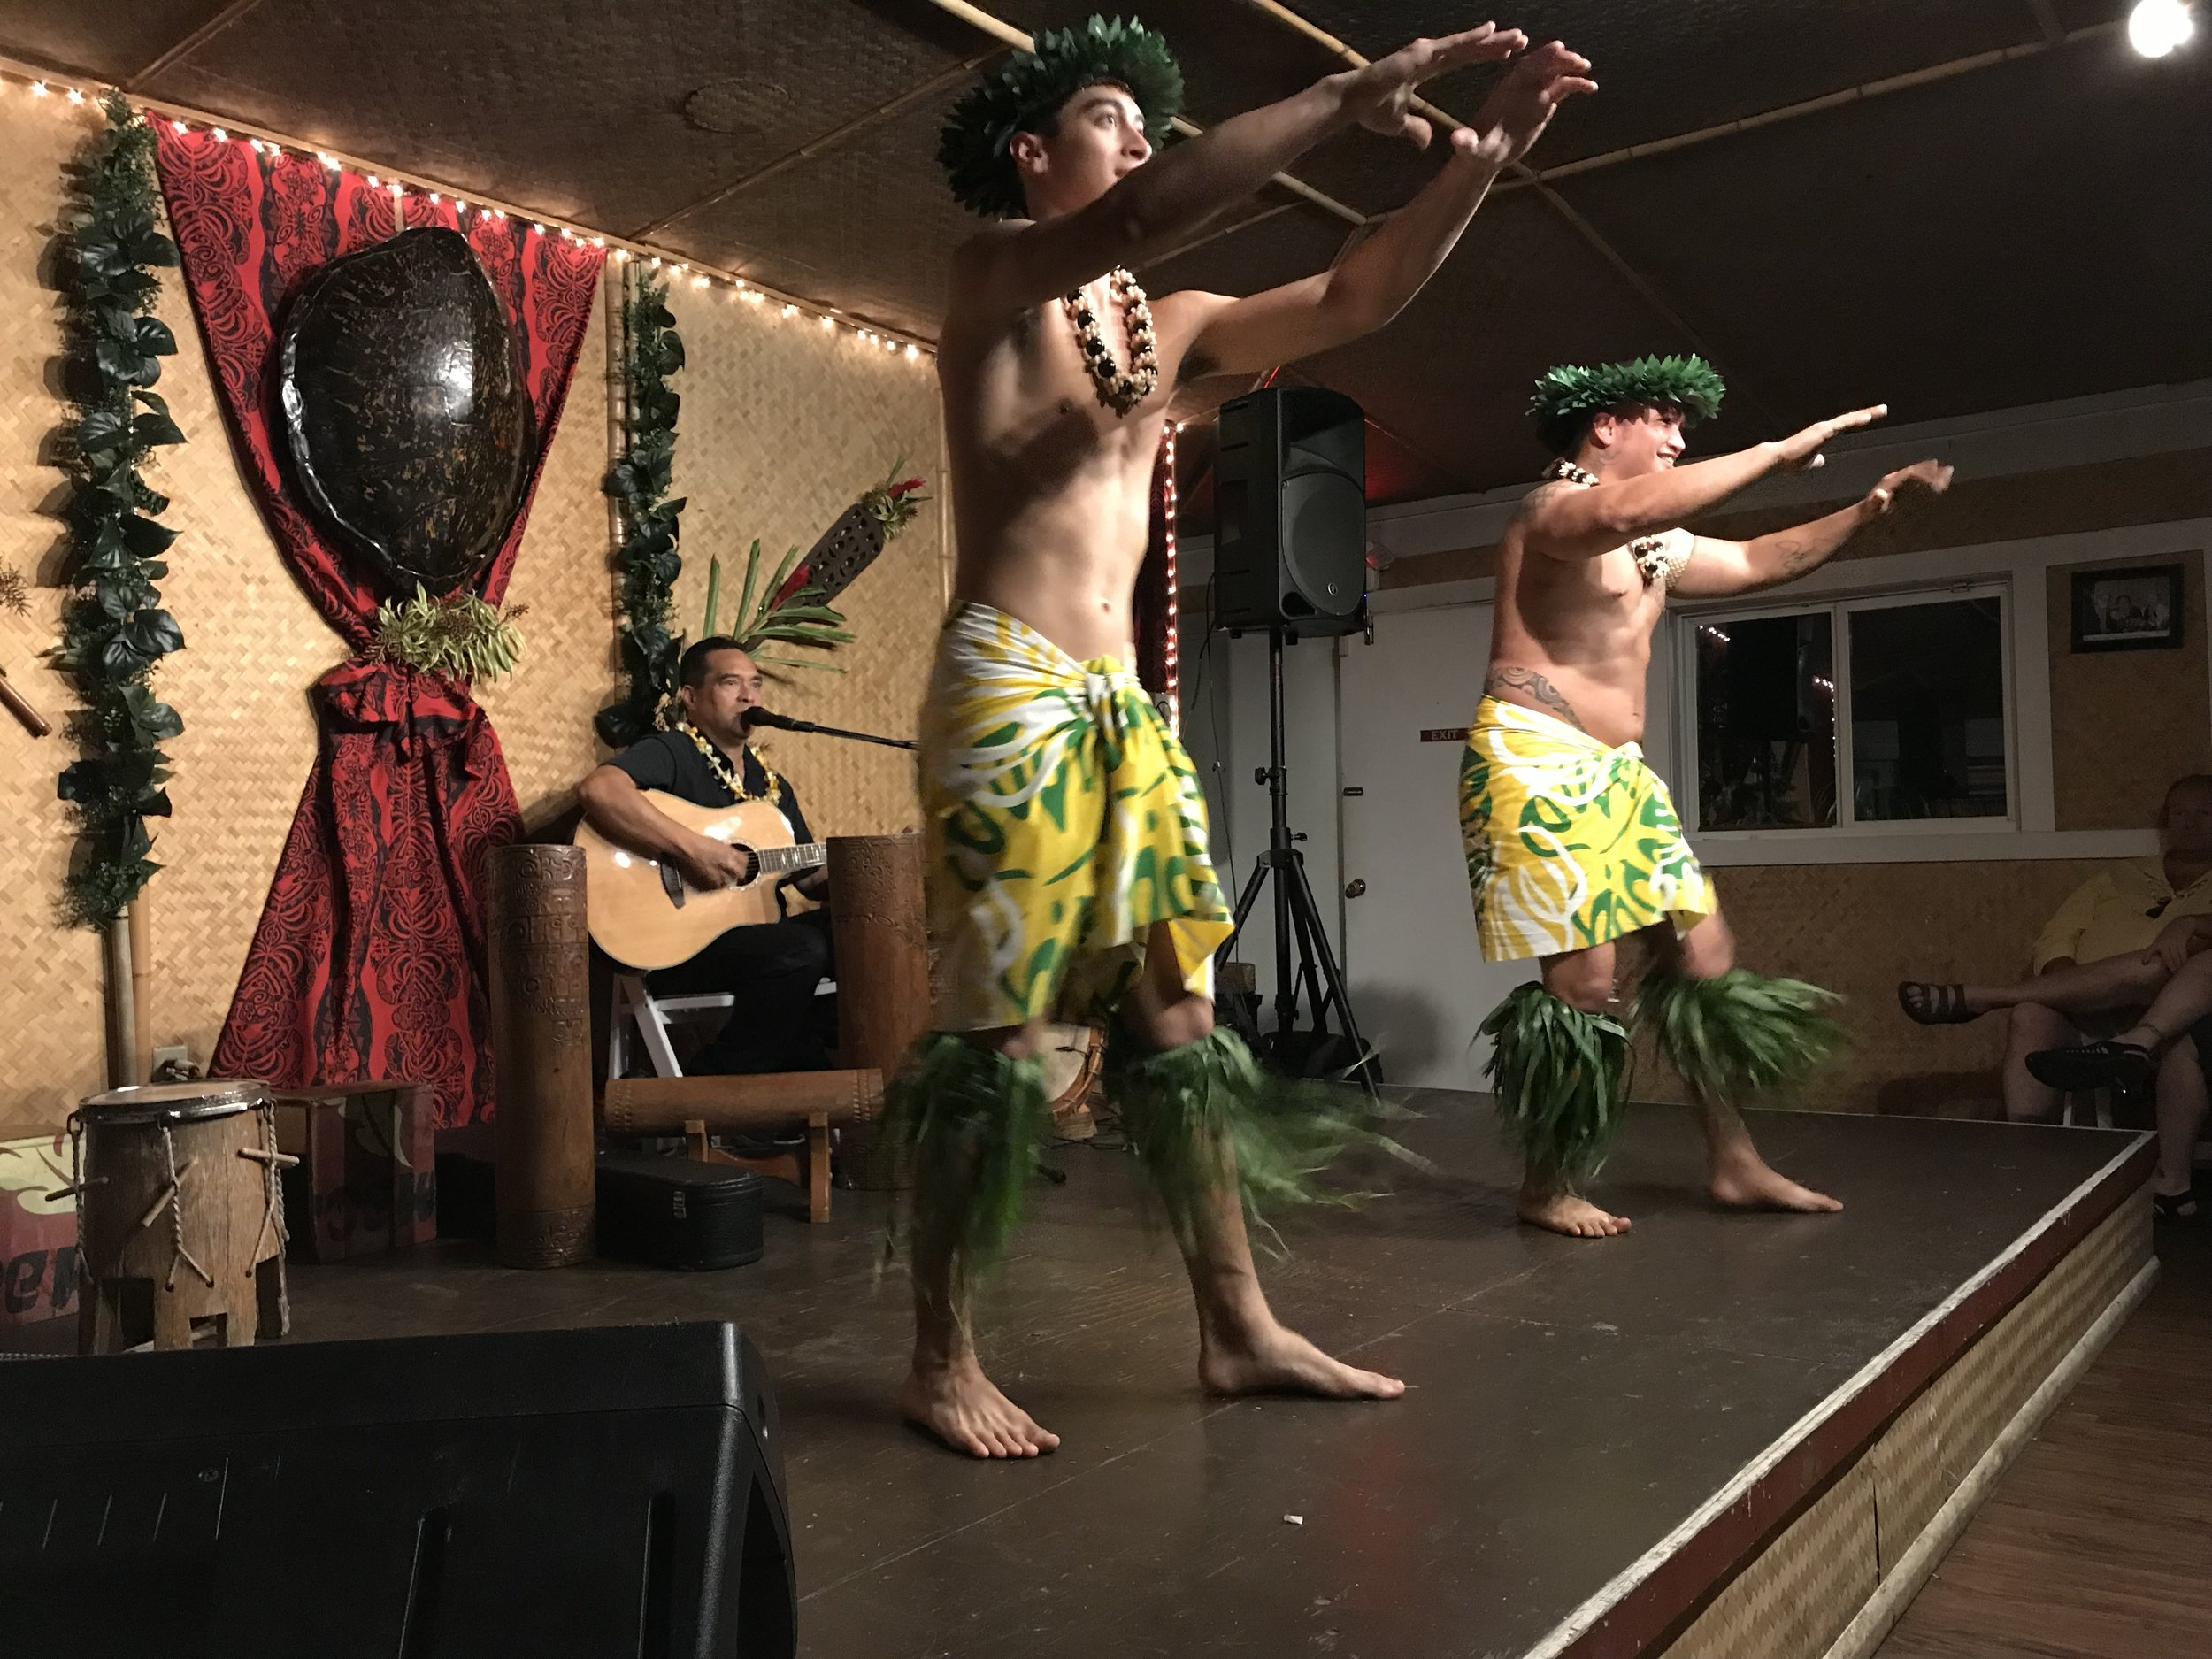 There are many variations of the dance known as the hula.